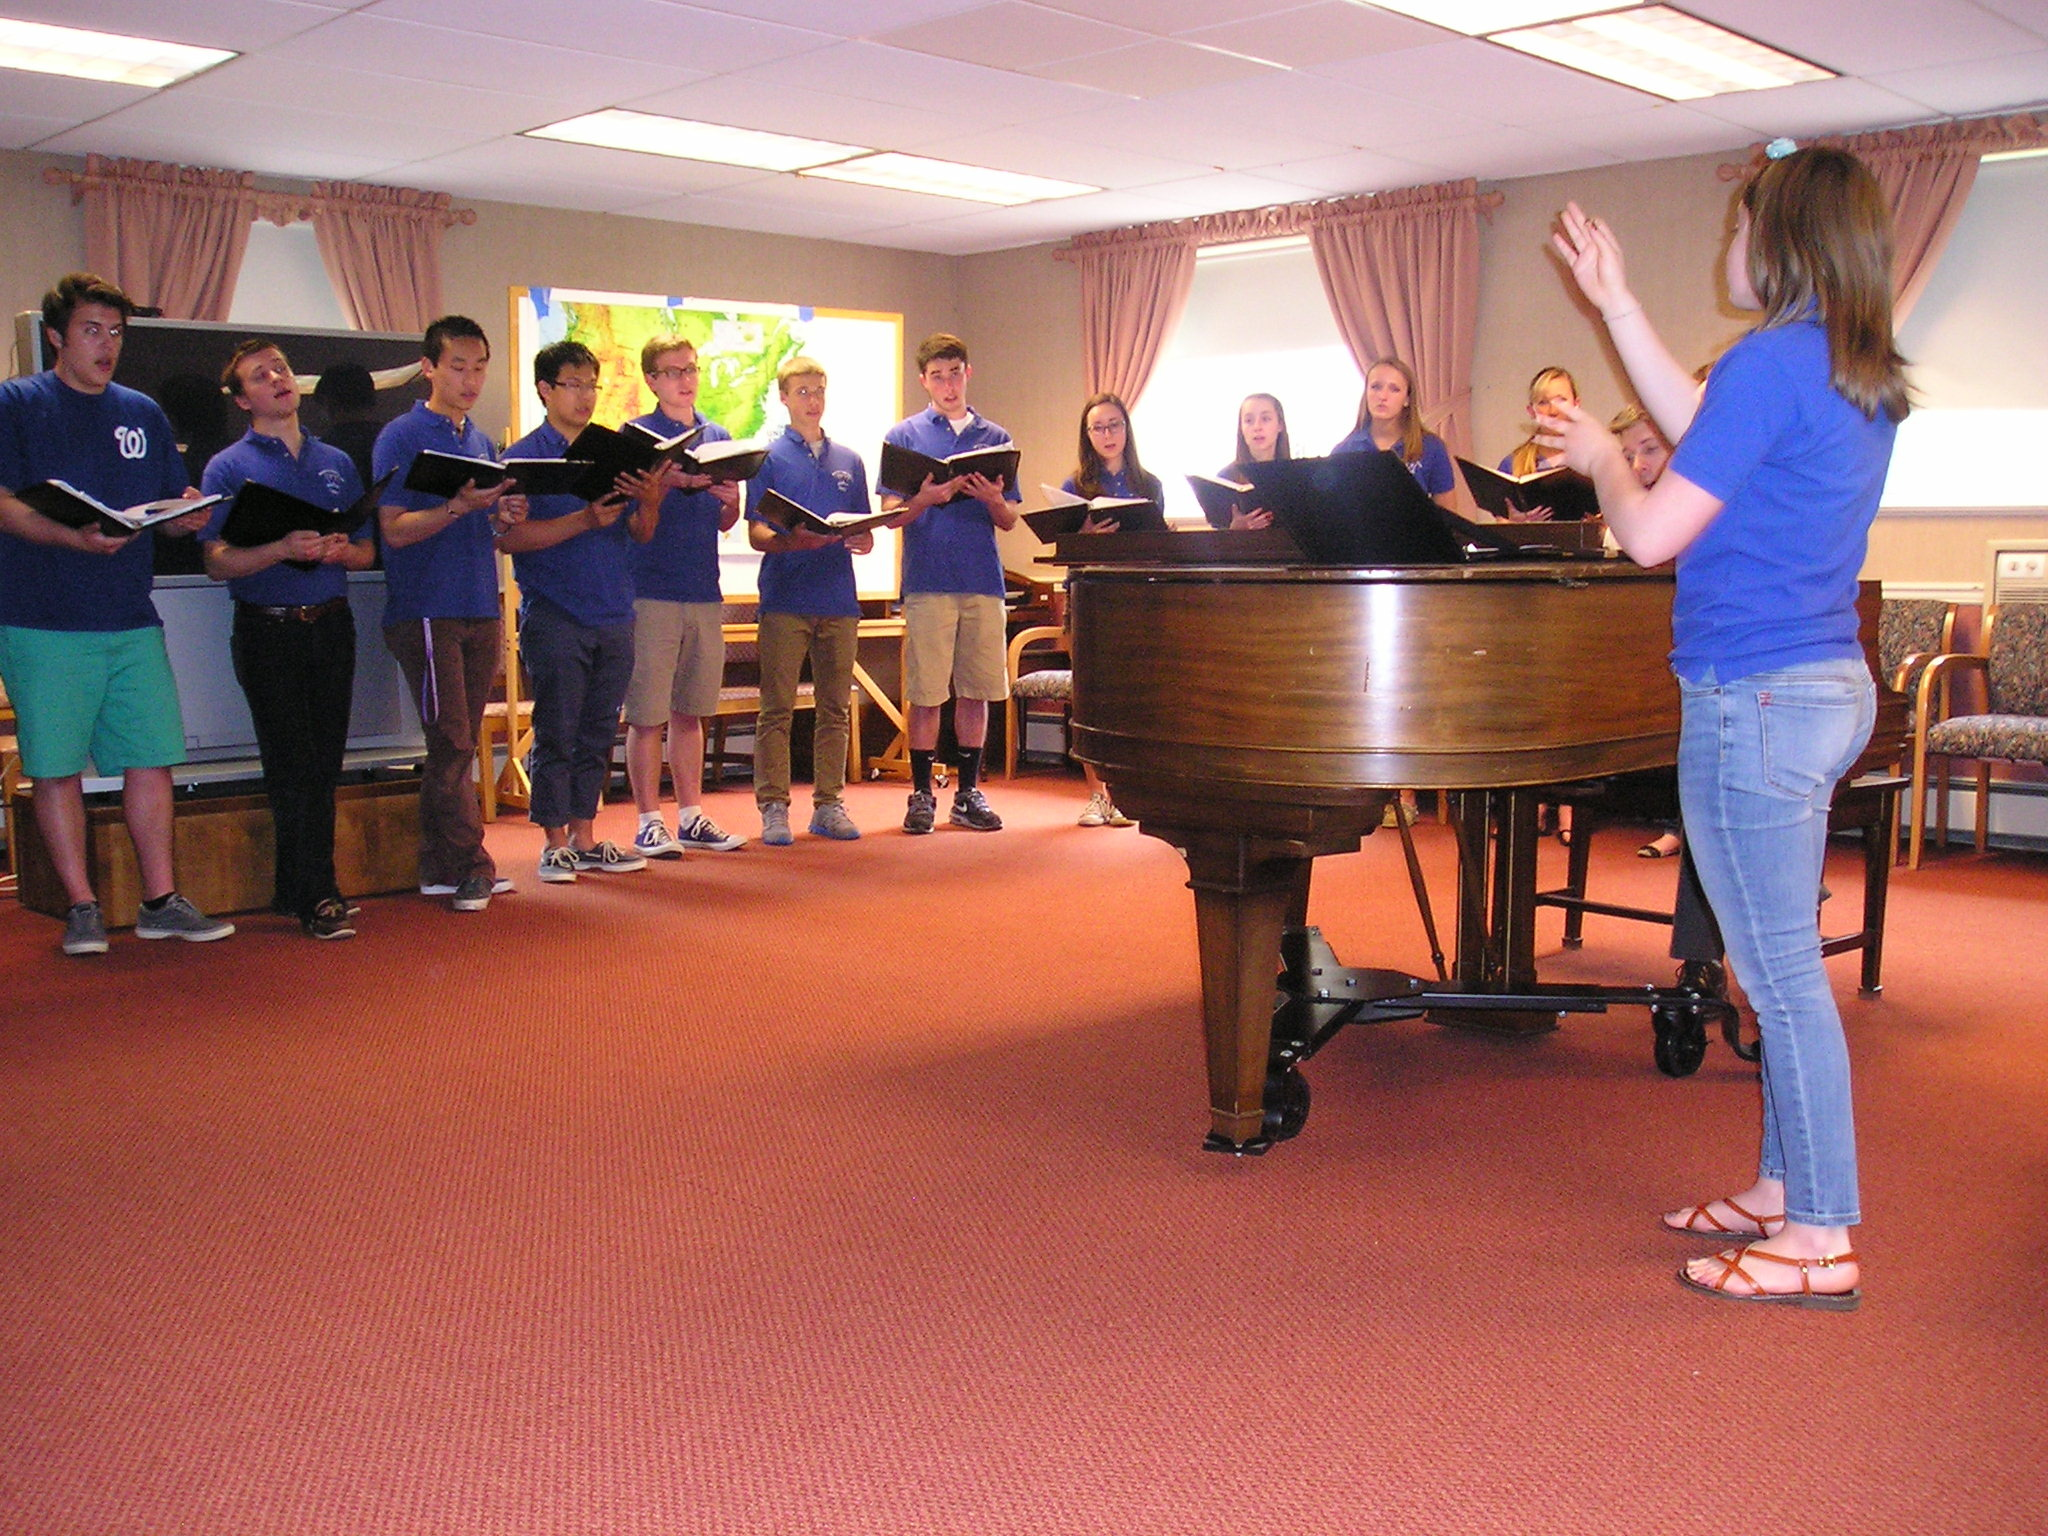 8bf5174ab66954836c1b_Allison_Hecht_Conducting_WHS_Chorale_for_Sr_Cit.JPG